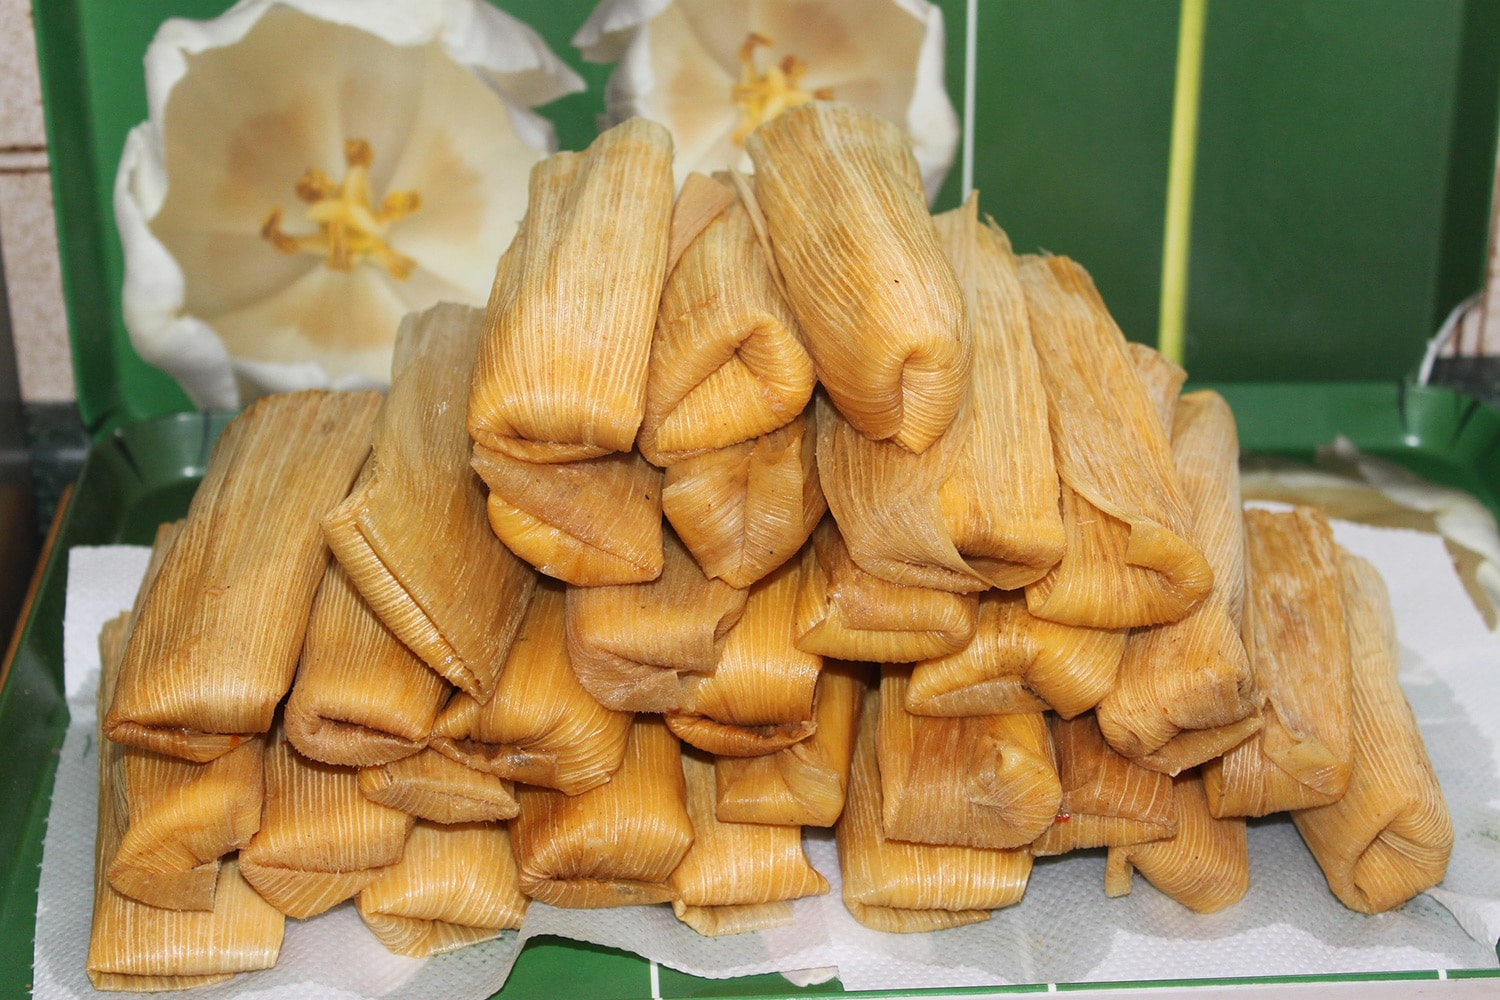 Image of Tamales